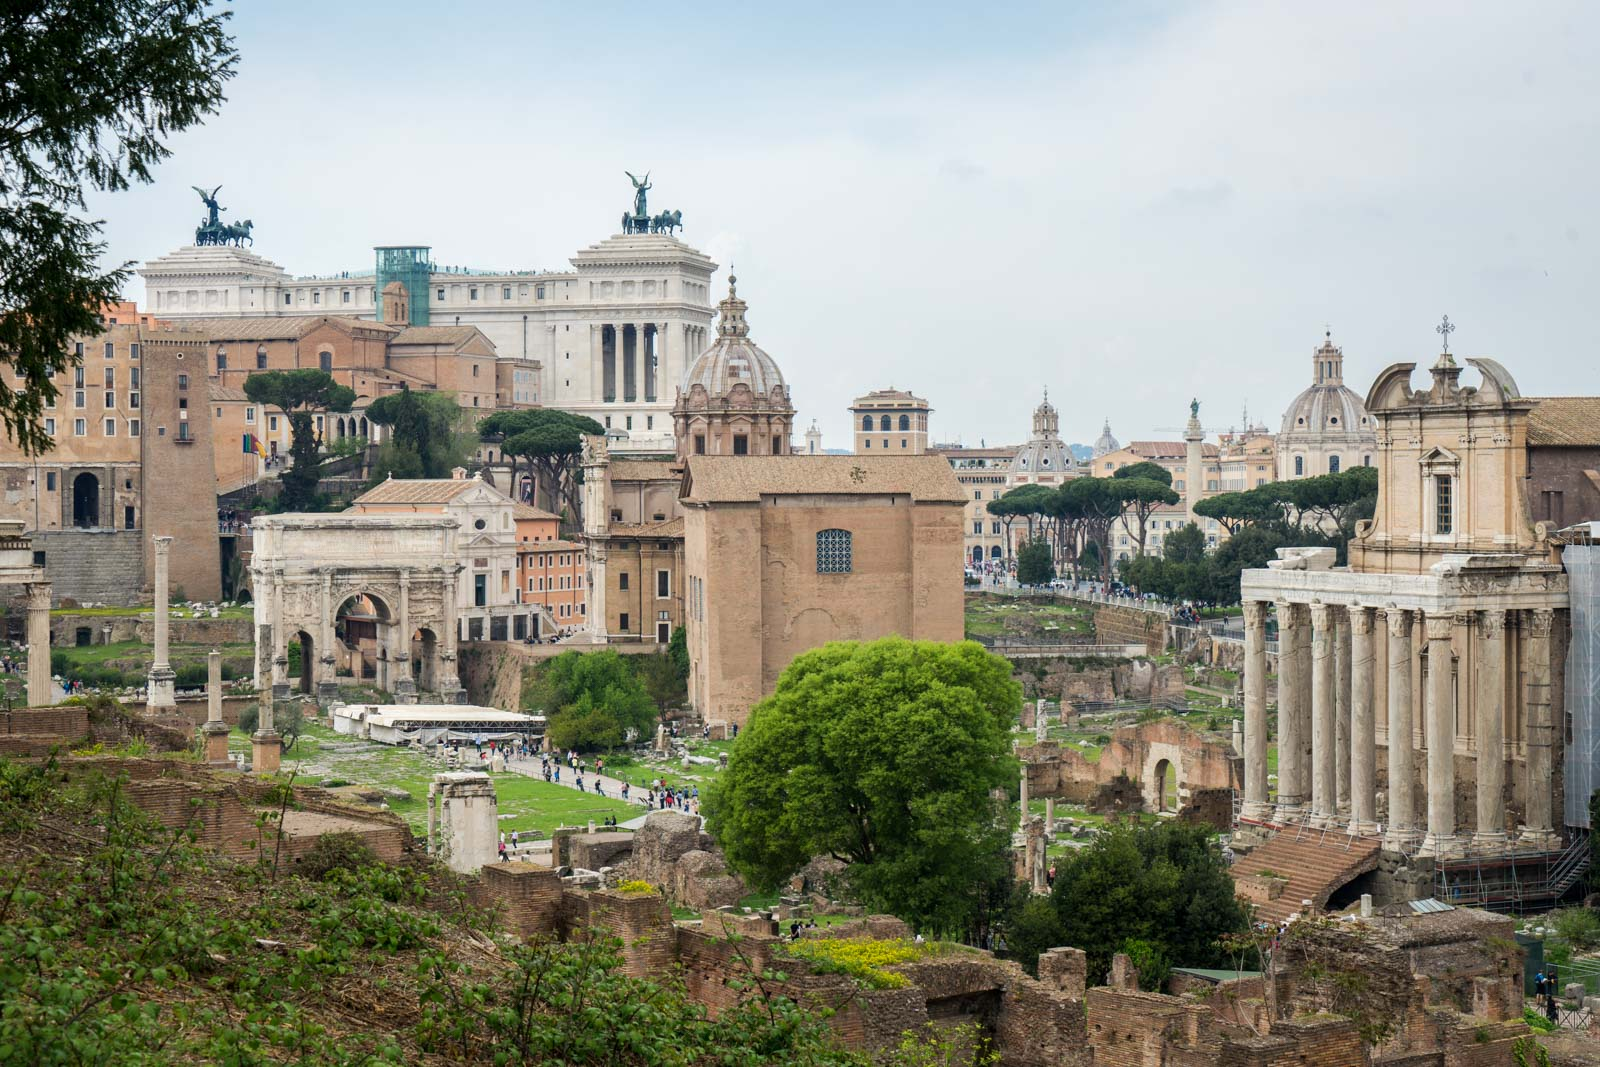 The Roman Forum and Palatine Hill in Rome, Italy